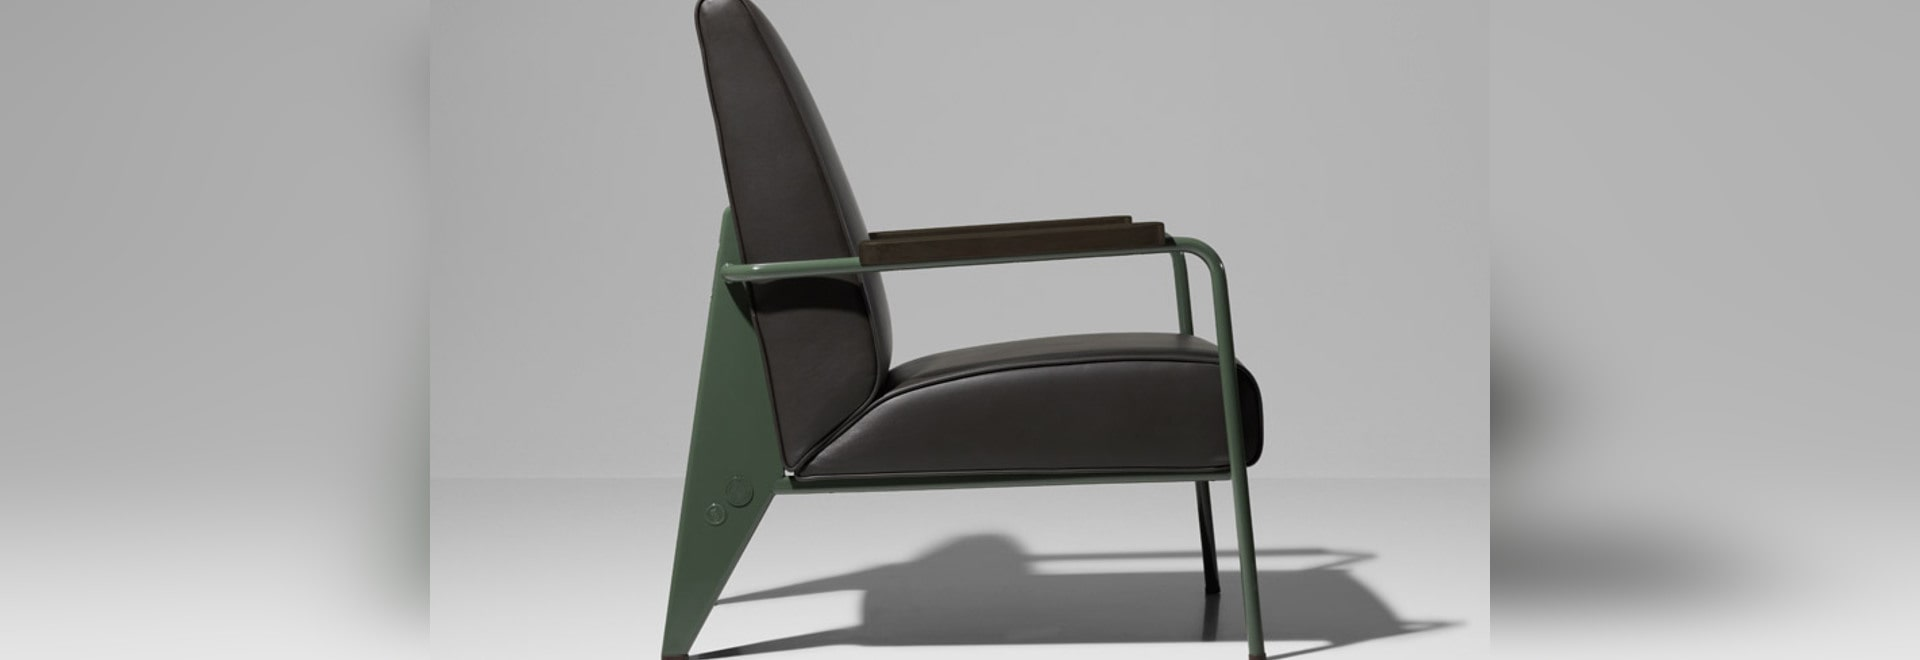 Muebles Jean Prouve - G Star Raw And Vitra Join Forces To Relaunch Jean Prouv S 1940s [mjhdah]https://s-media-cache-ak0.pinimg.com/originals/ee/f2/e2/eef2e2b716a843838160e1ae422b45cc.png